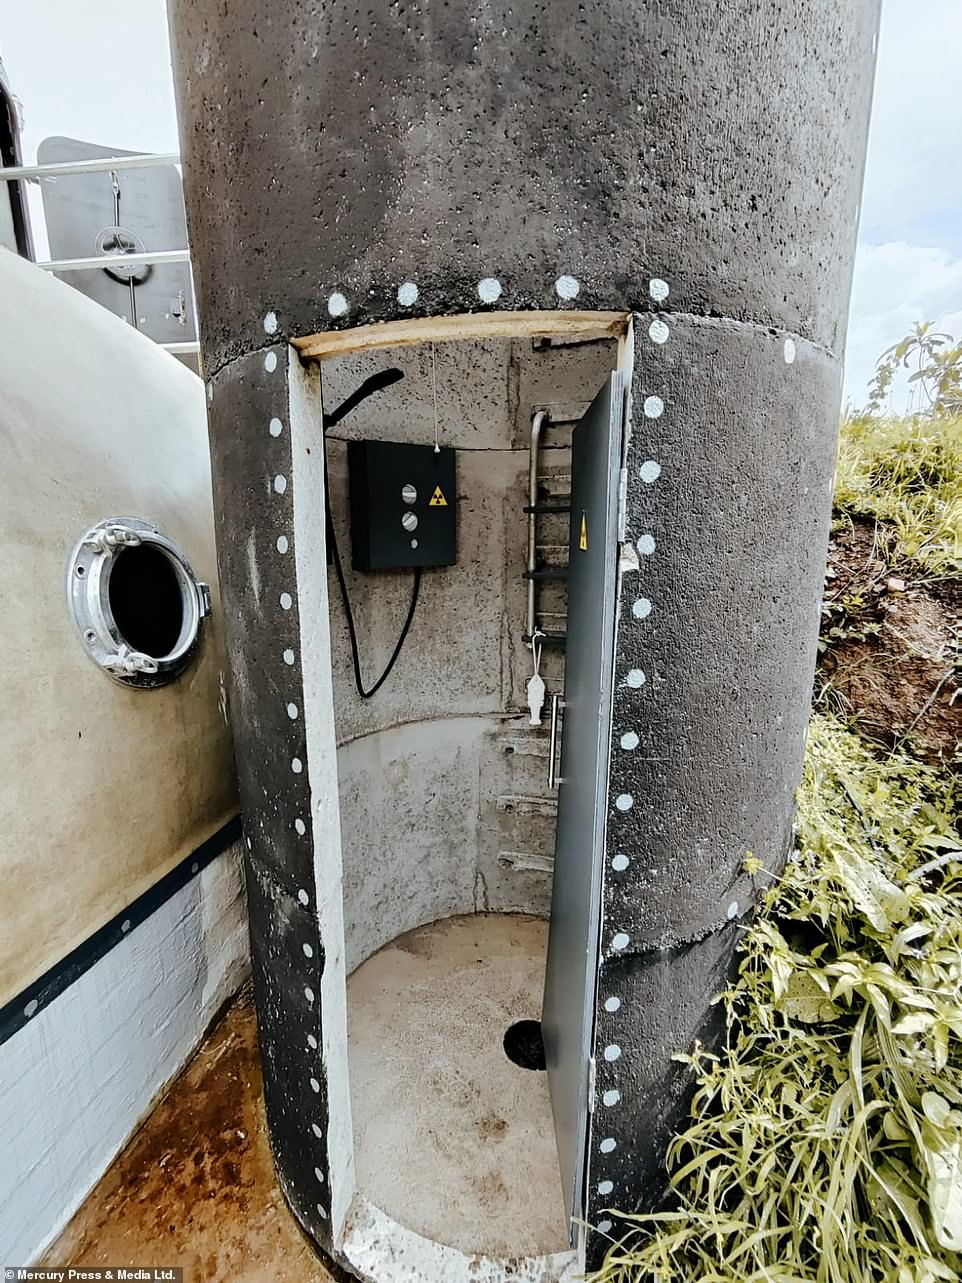 After it narrowly dodged active service in the Falklands War, Mr Davies salvaged the sonar dome in November last year when a friend with naval connections suggested he might be able to put it to good use